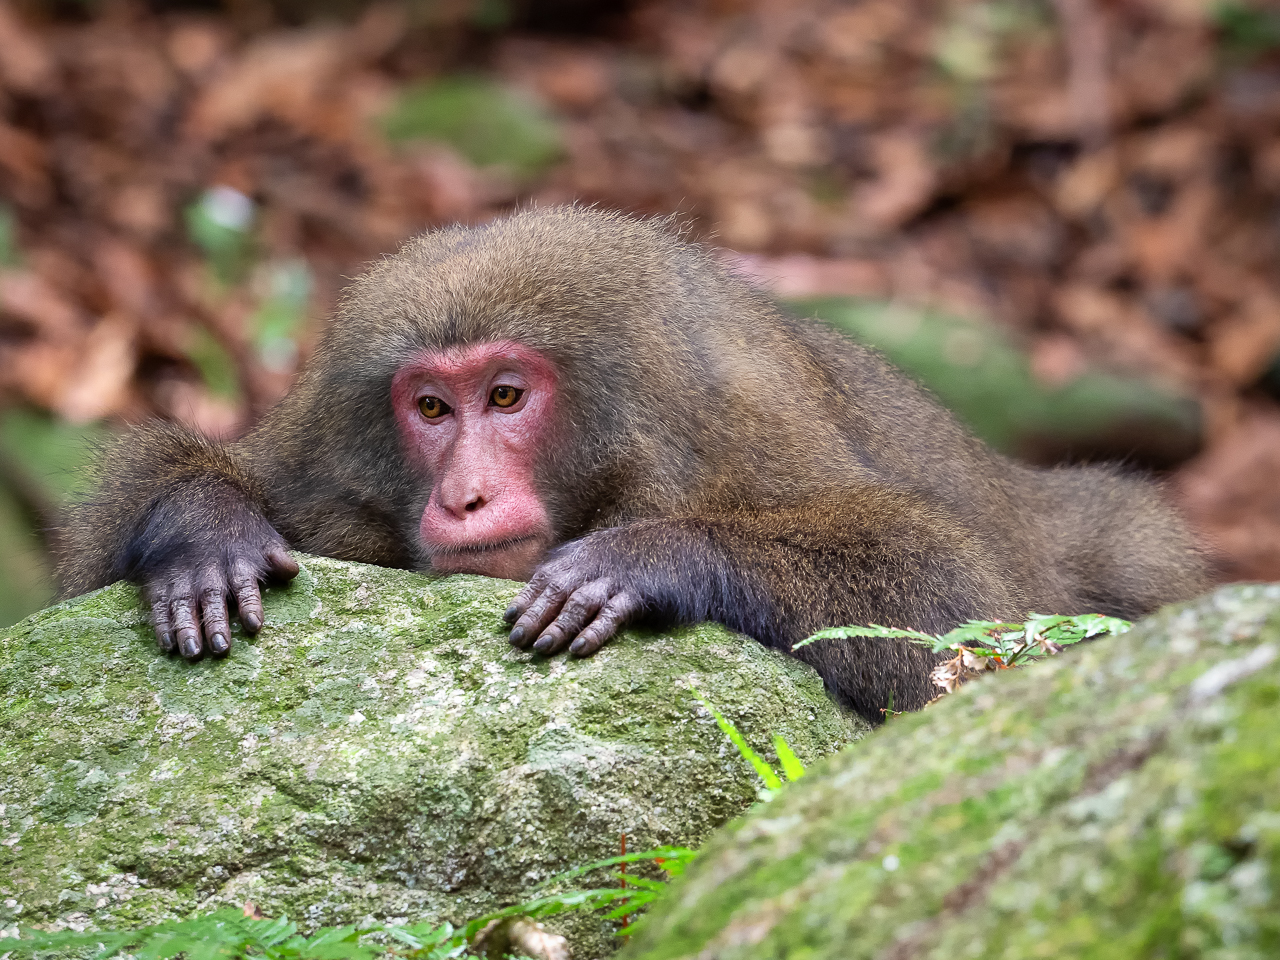 Japan travel photography: Yakushima macaques (Macaca fuscata yakui) in woodland in Western Yakushima, Japan.